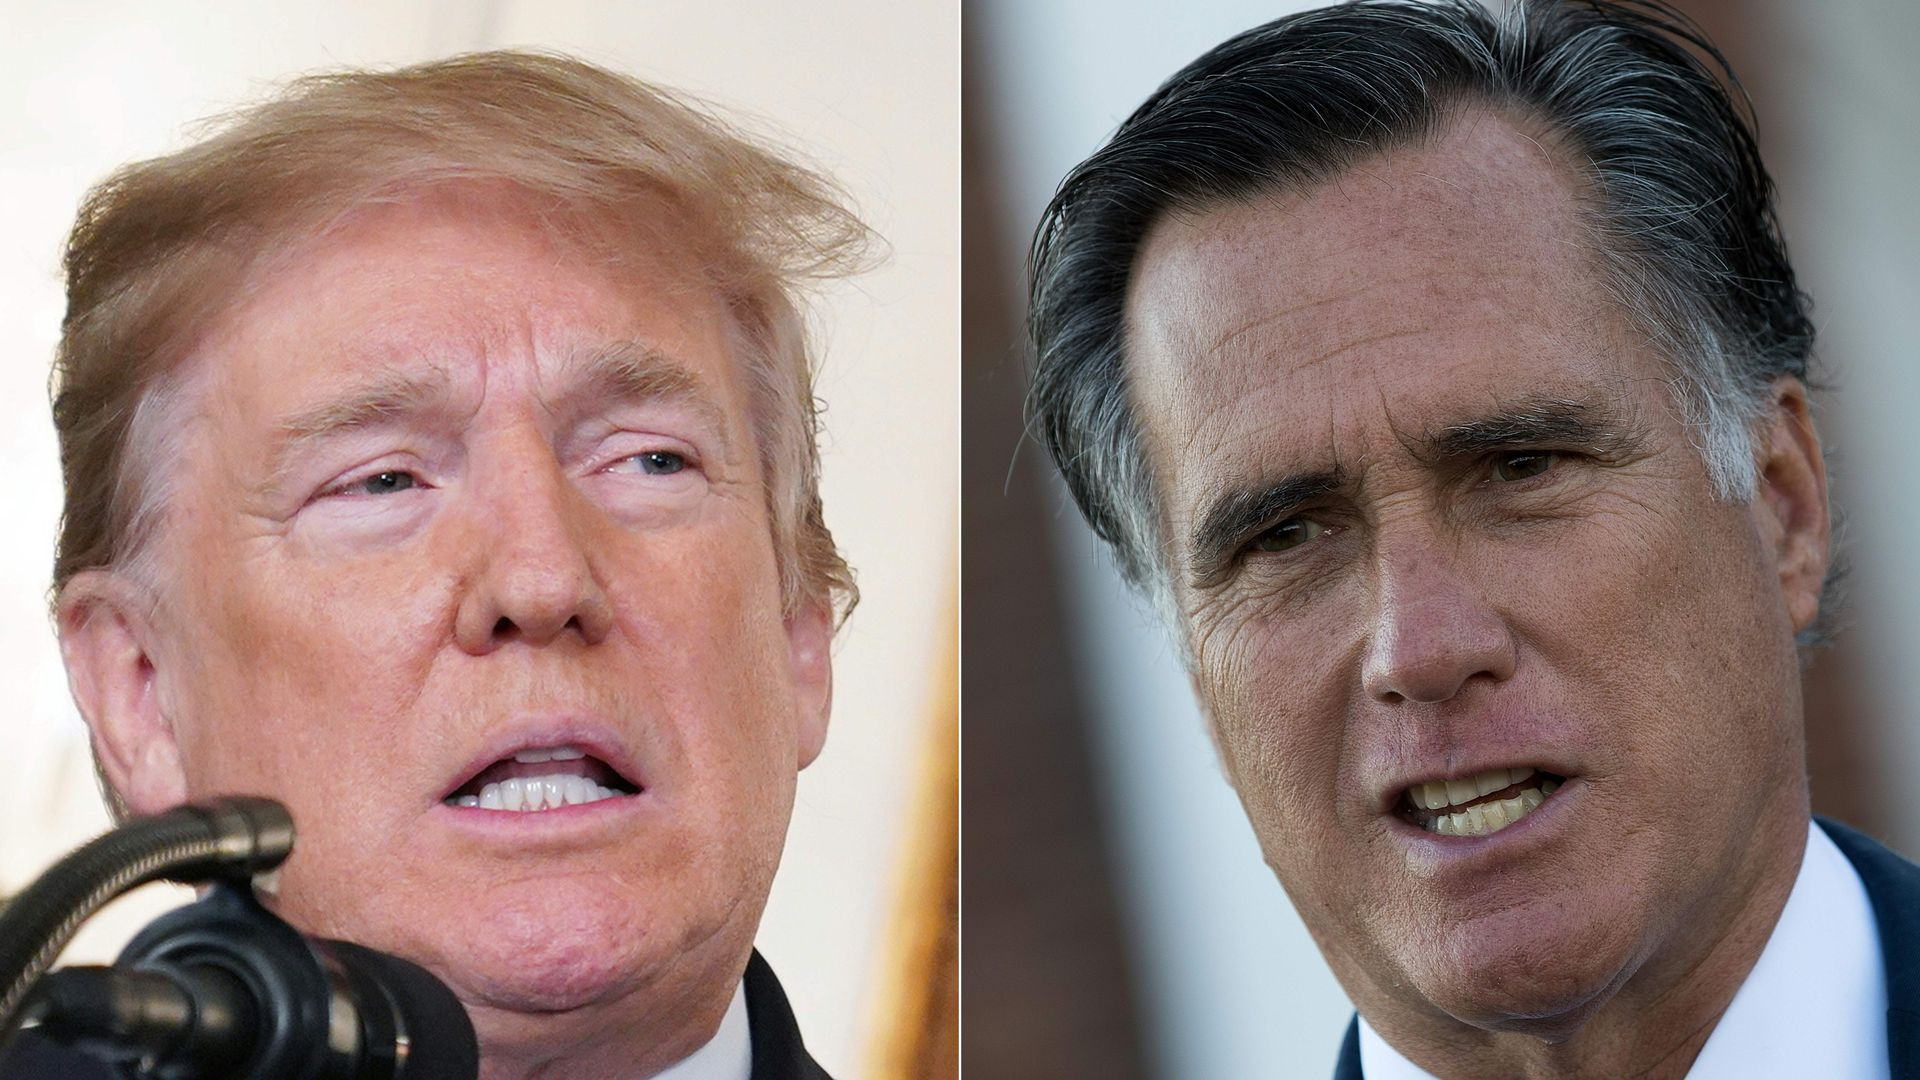 Trump fires back at Romney after his scathing Mueller report comments